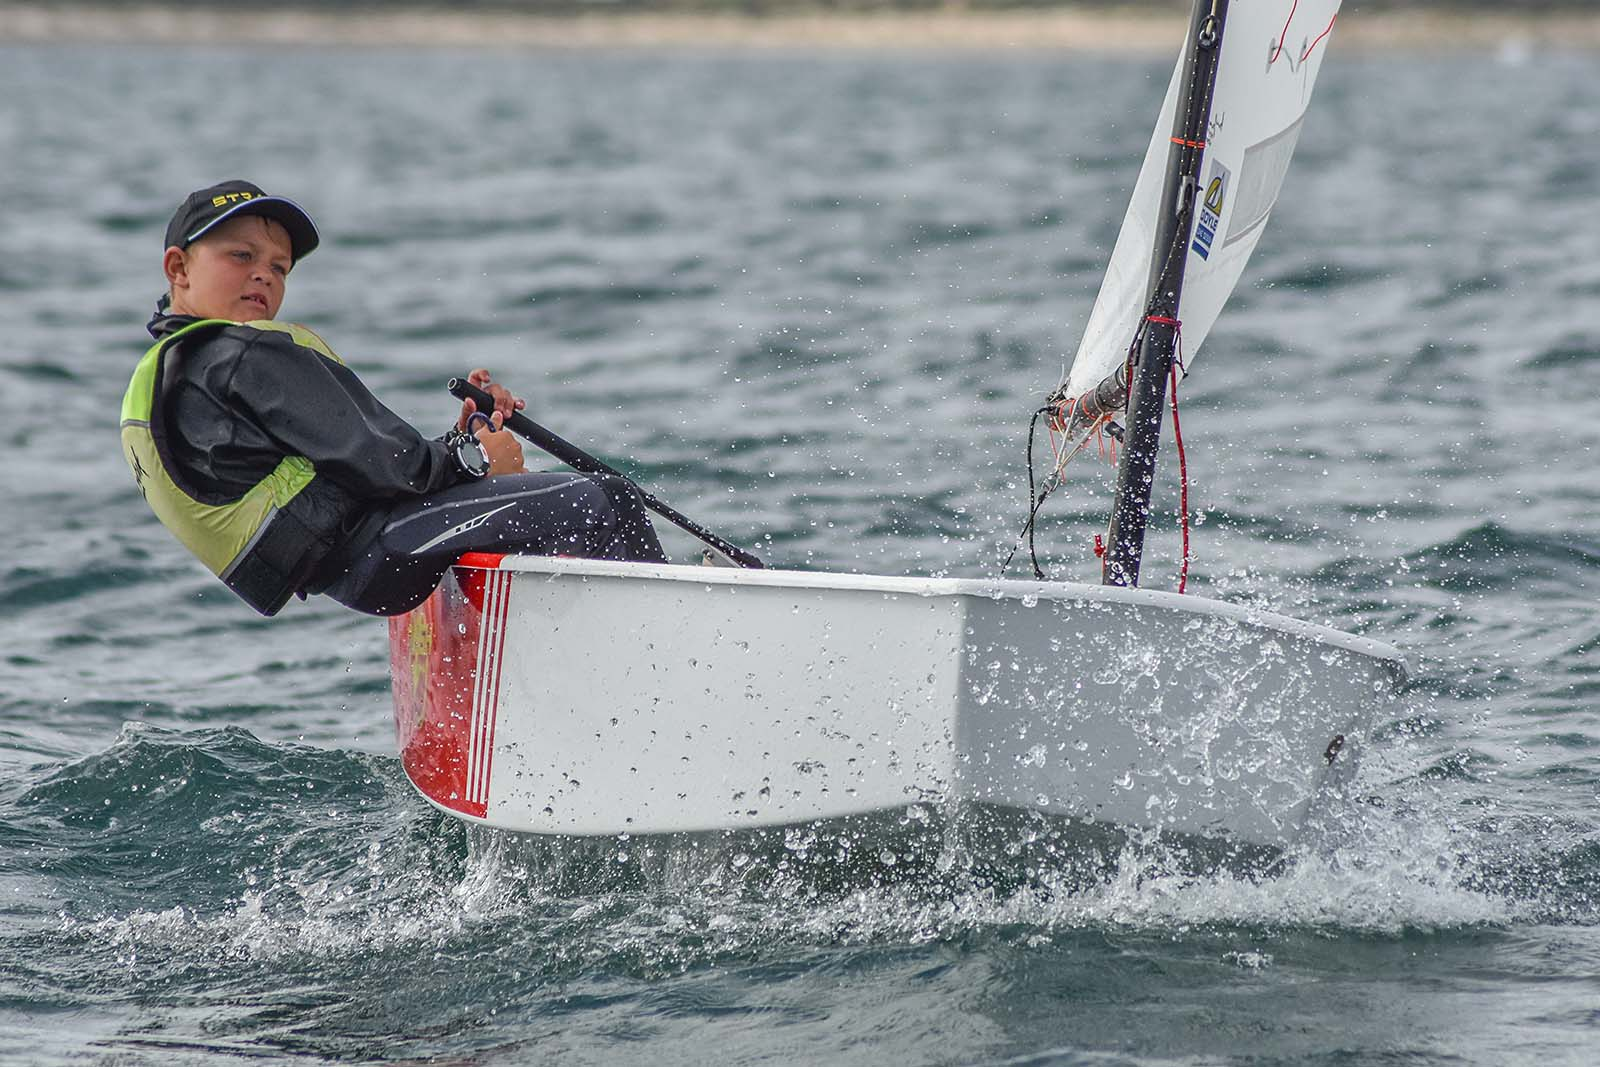 Strong winds predicted for SA Optimist States